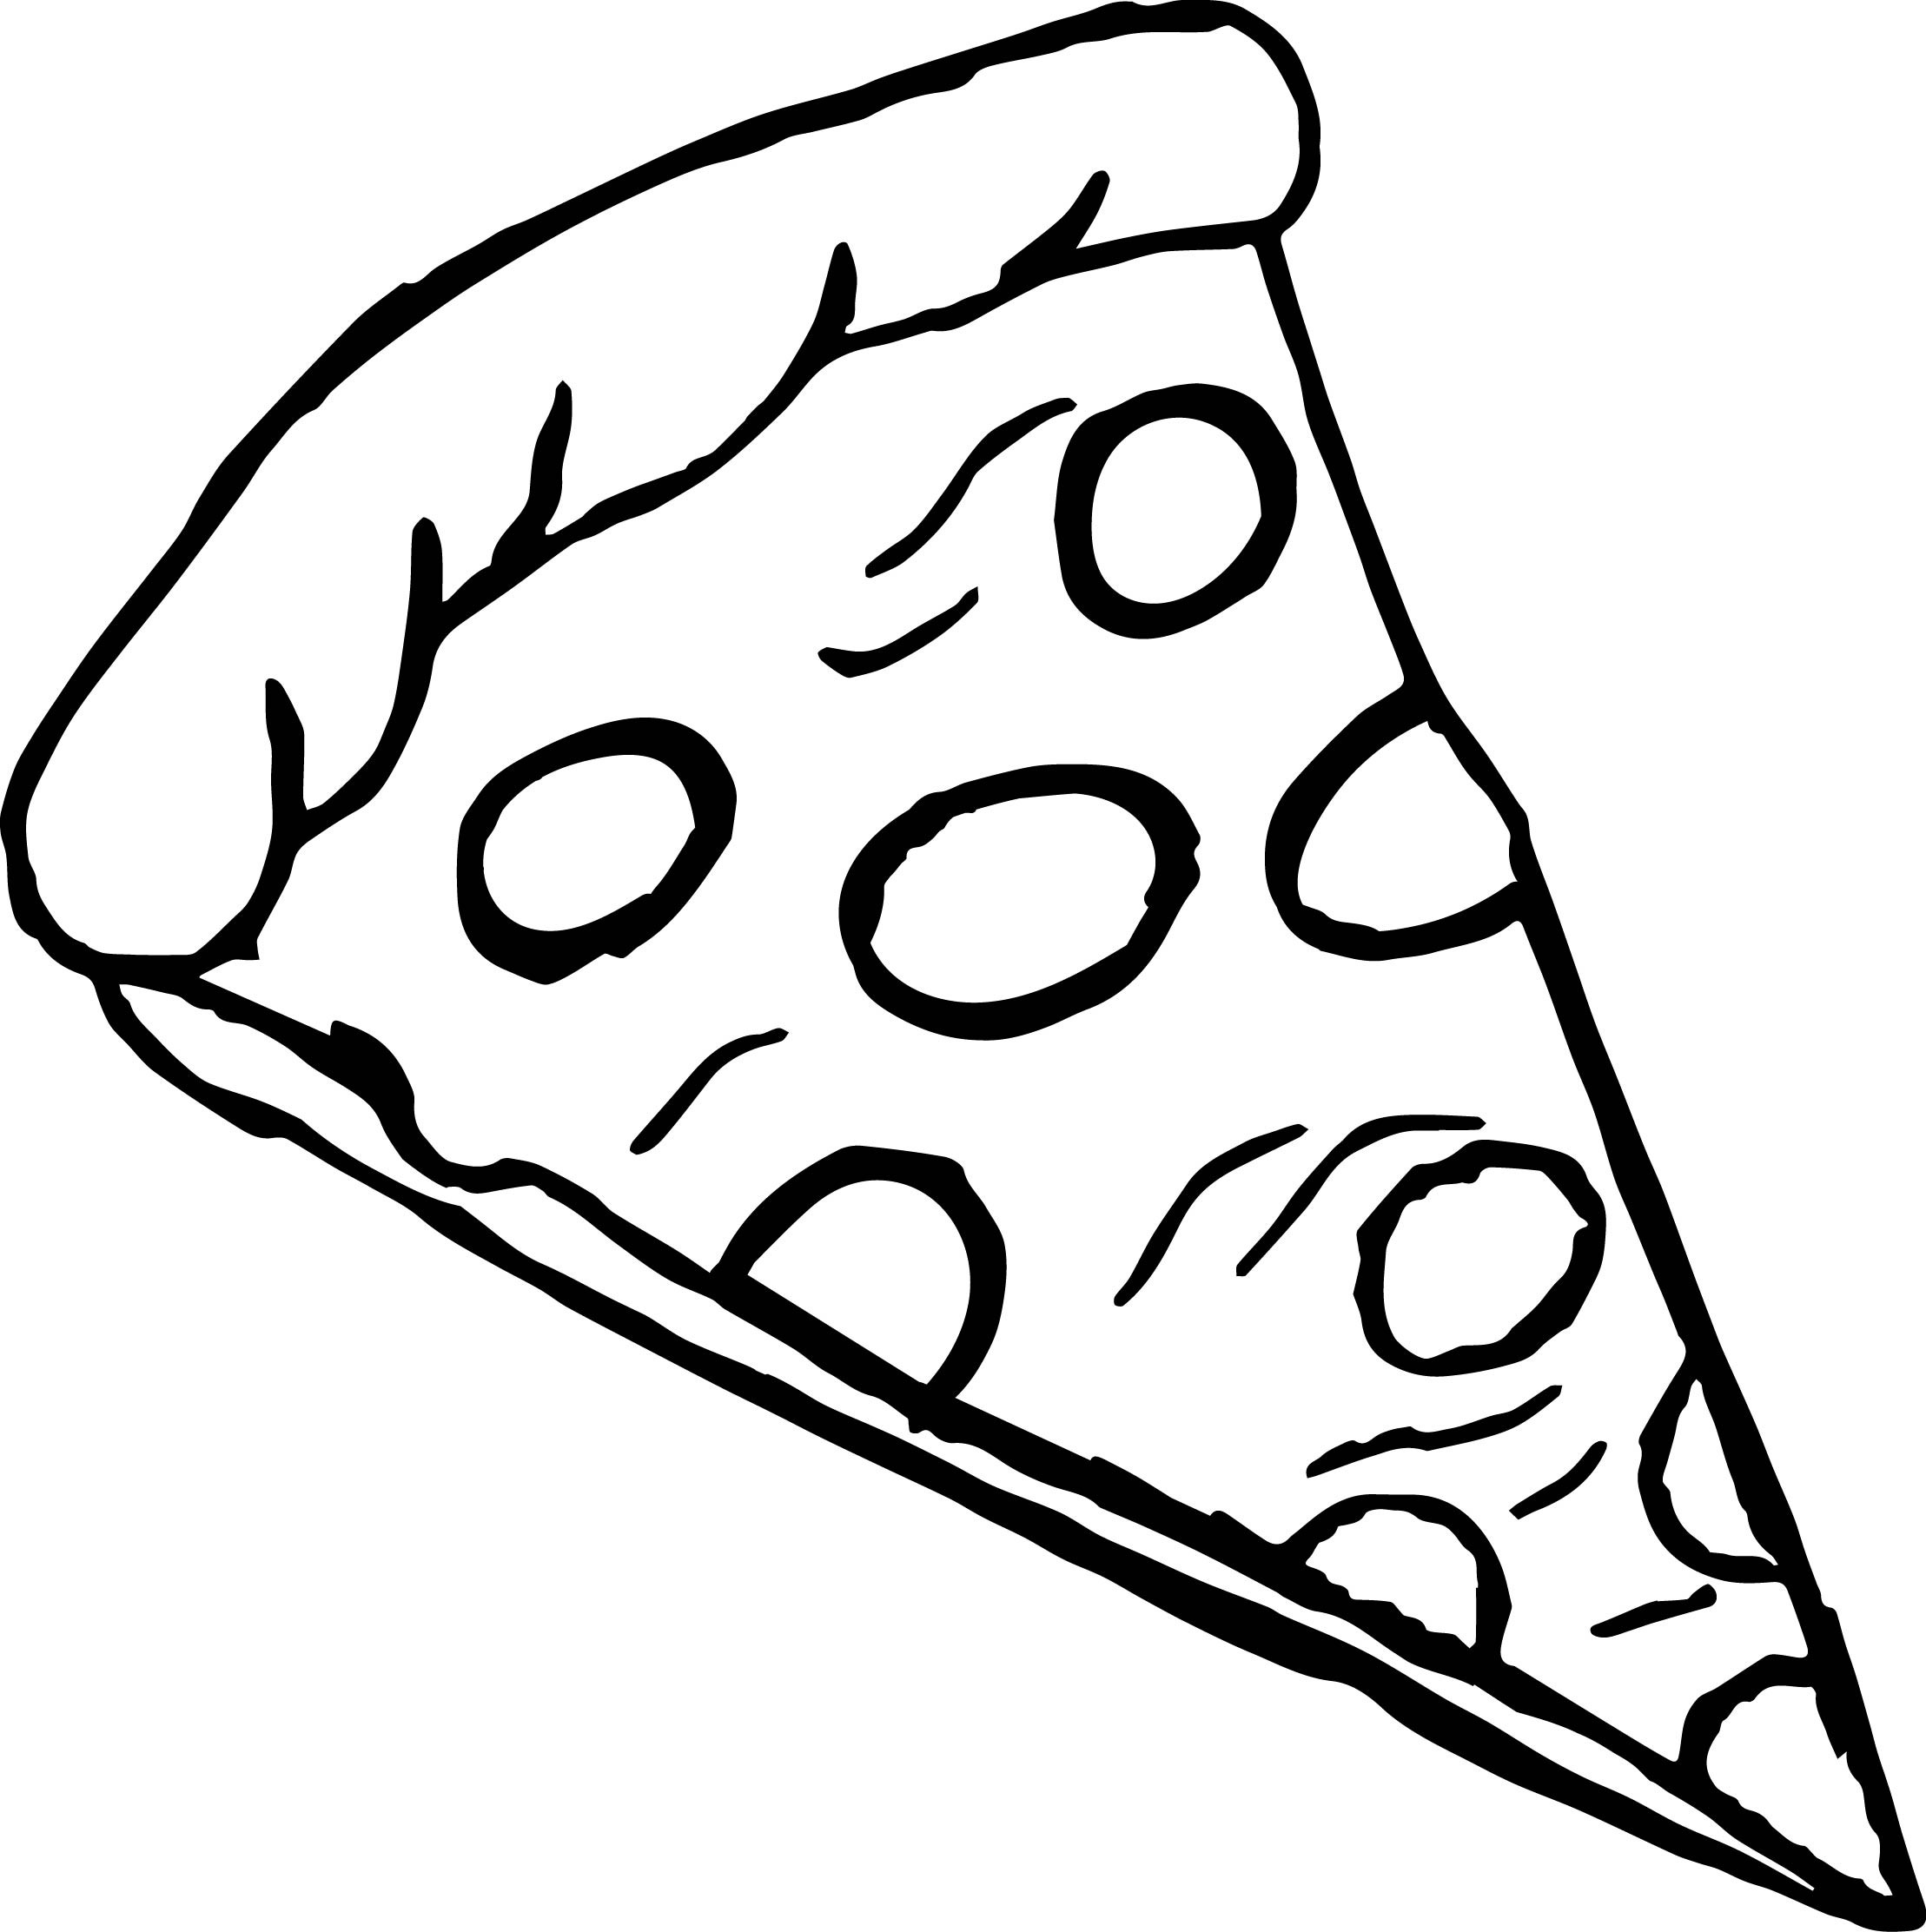 2217x2224 Pizza Coloring Page Unique Pizza Slice Drawing Thebestreview